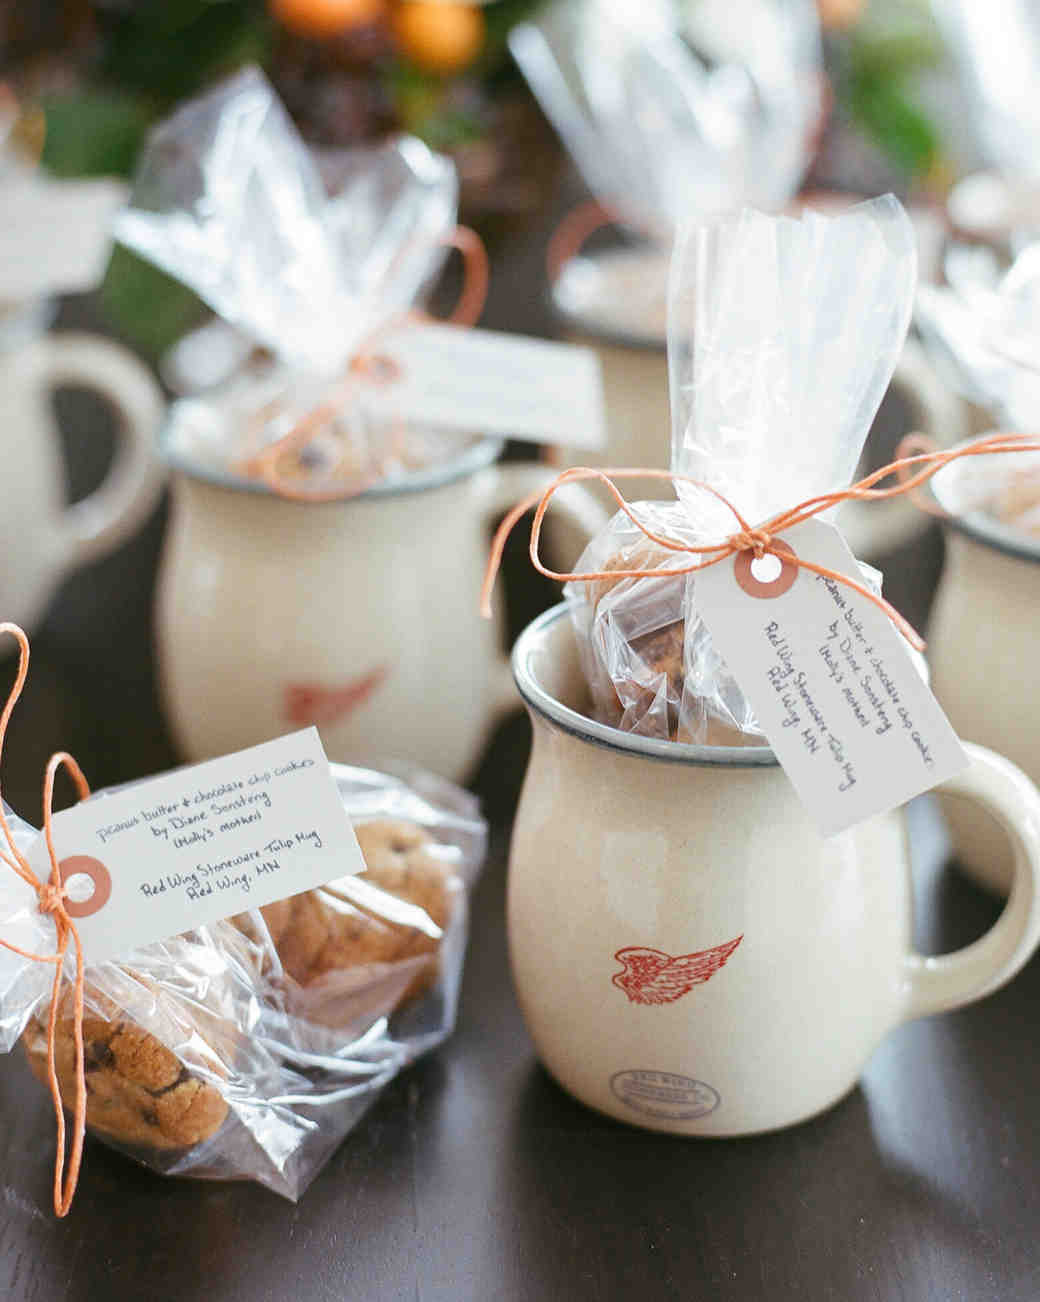 Best ideas about Wedding Favor Gift Ideas . Save or Pin 24 Unique Winter Wedding Favor Ideas Now.